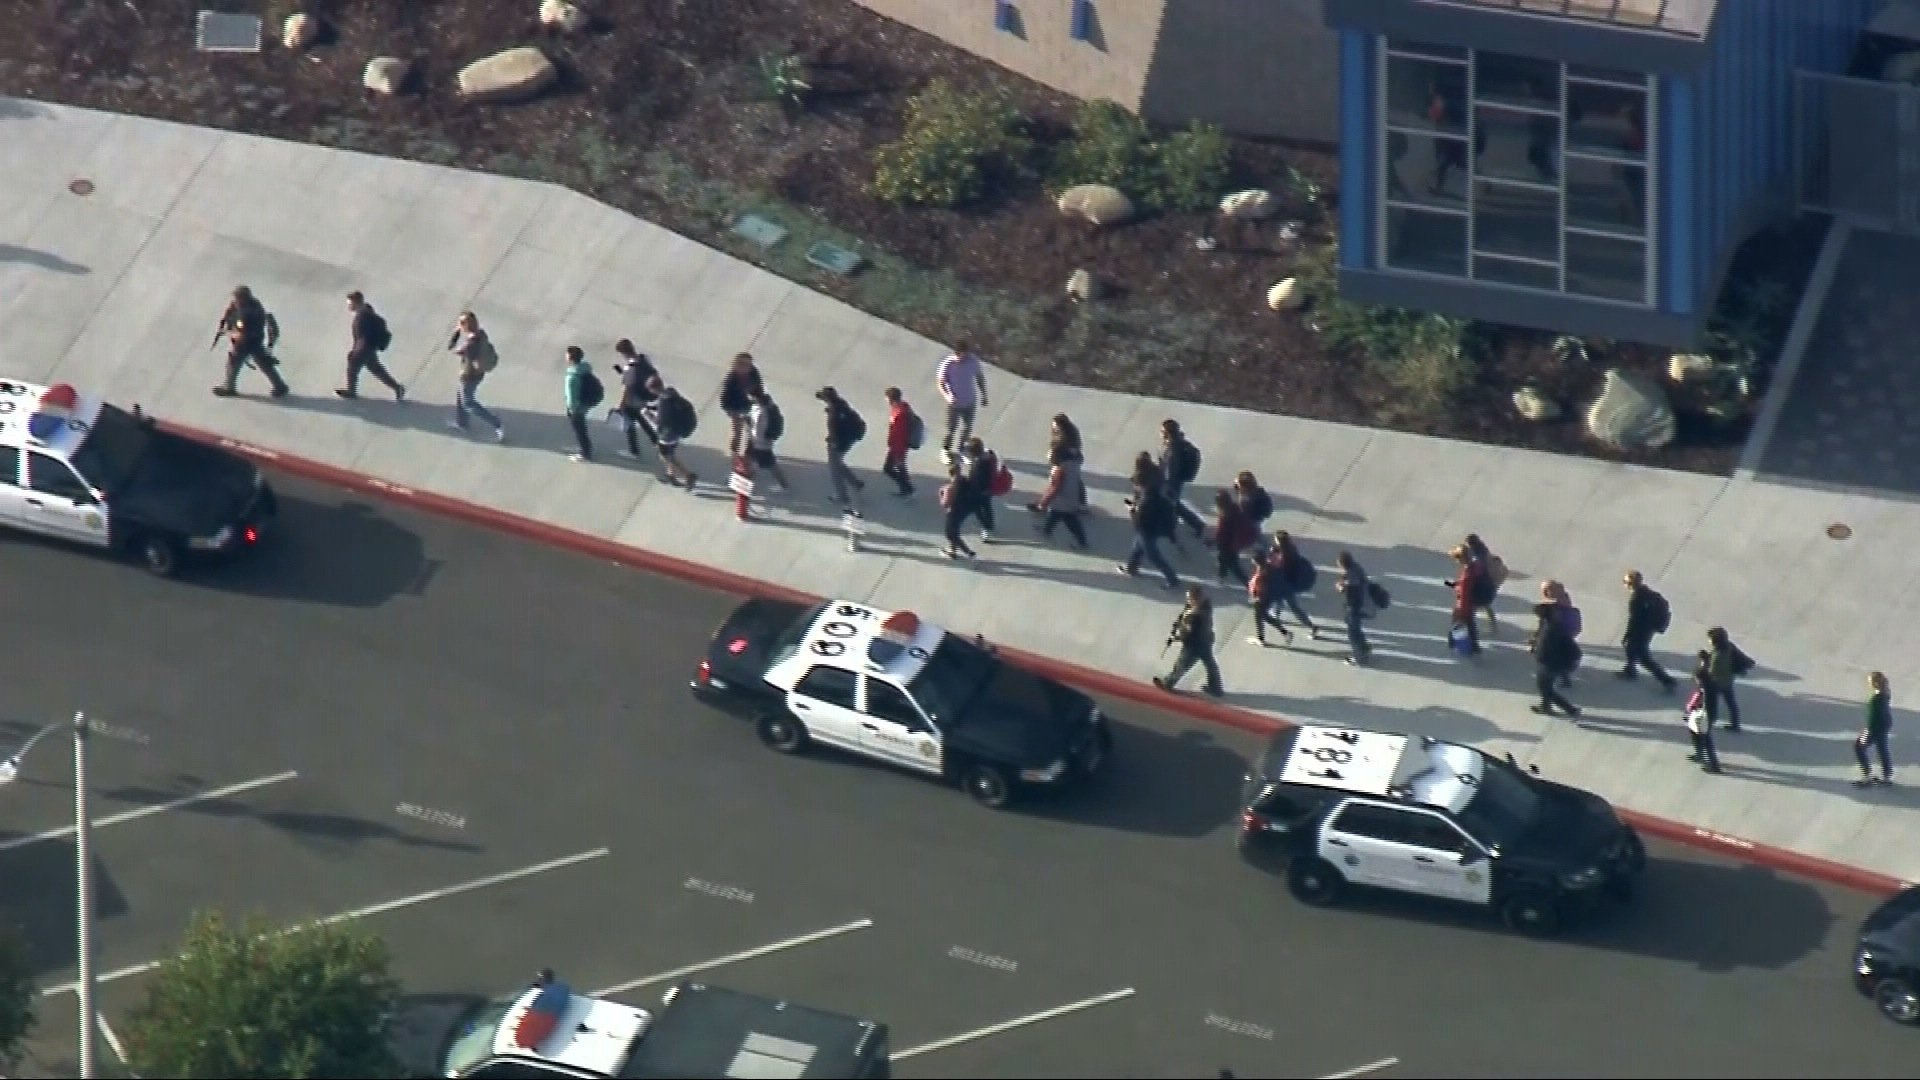 After Parkland, Saugus High students walked out to protest school shootings. Today, their school was the target